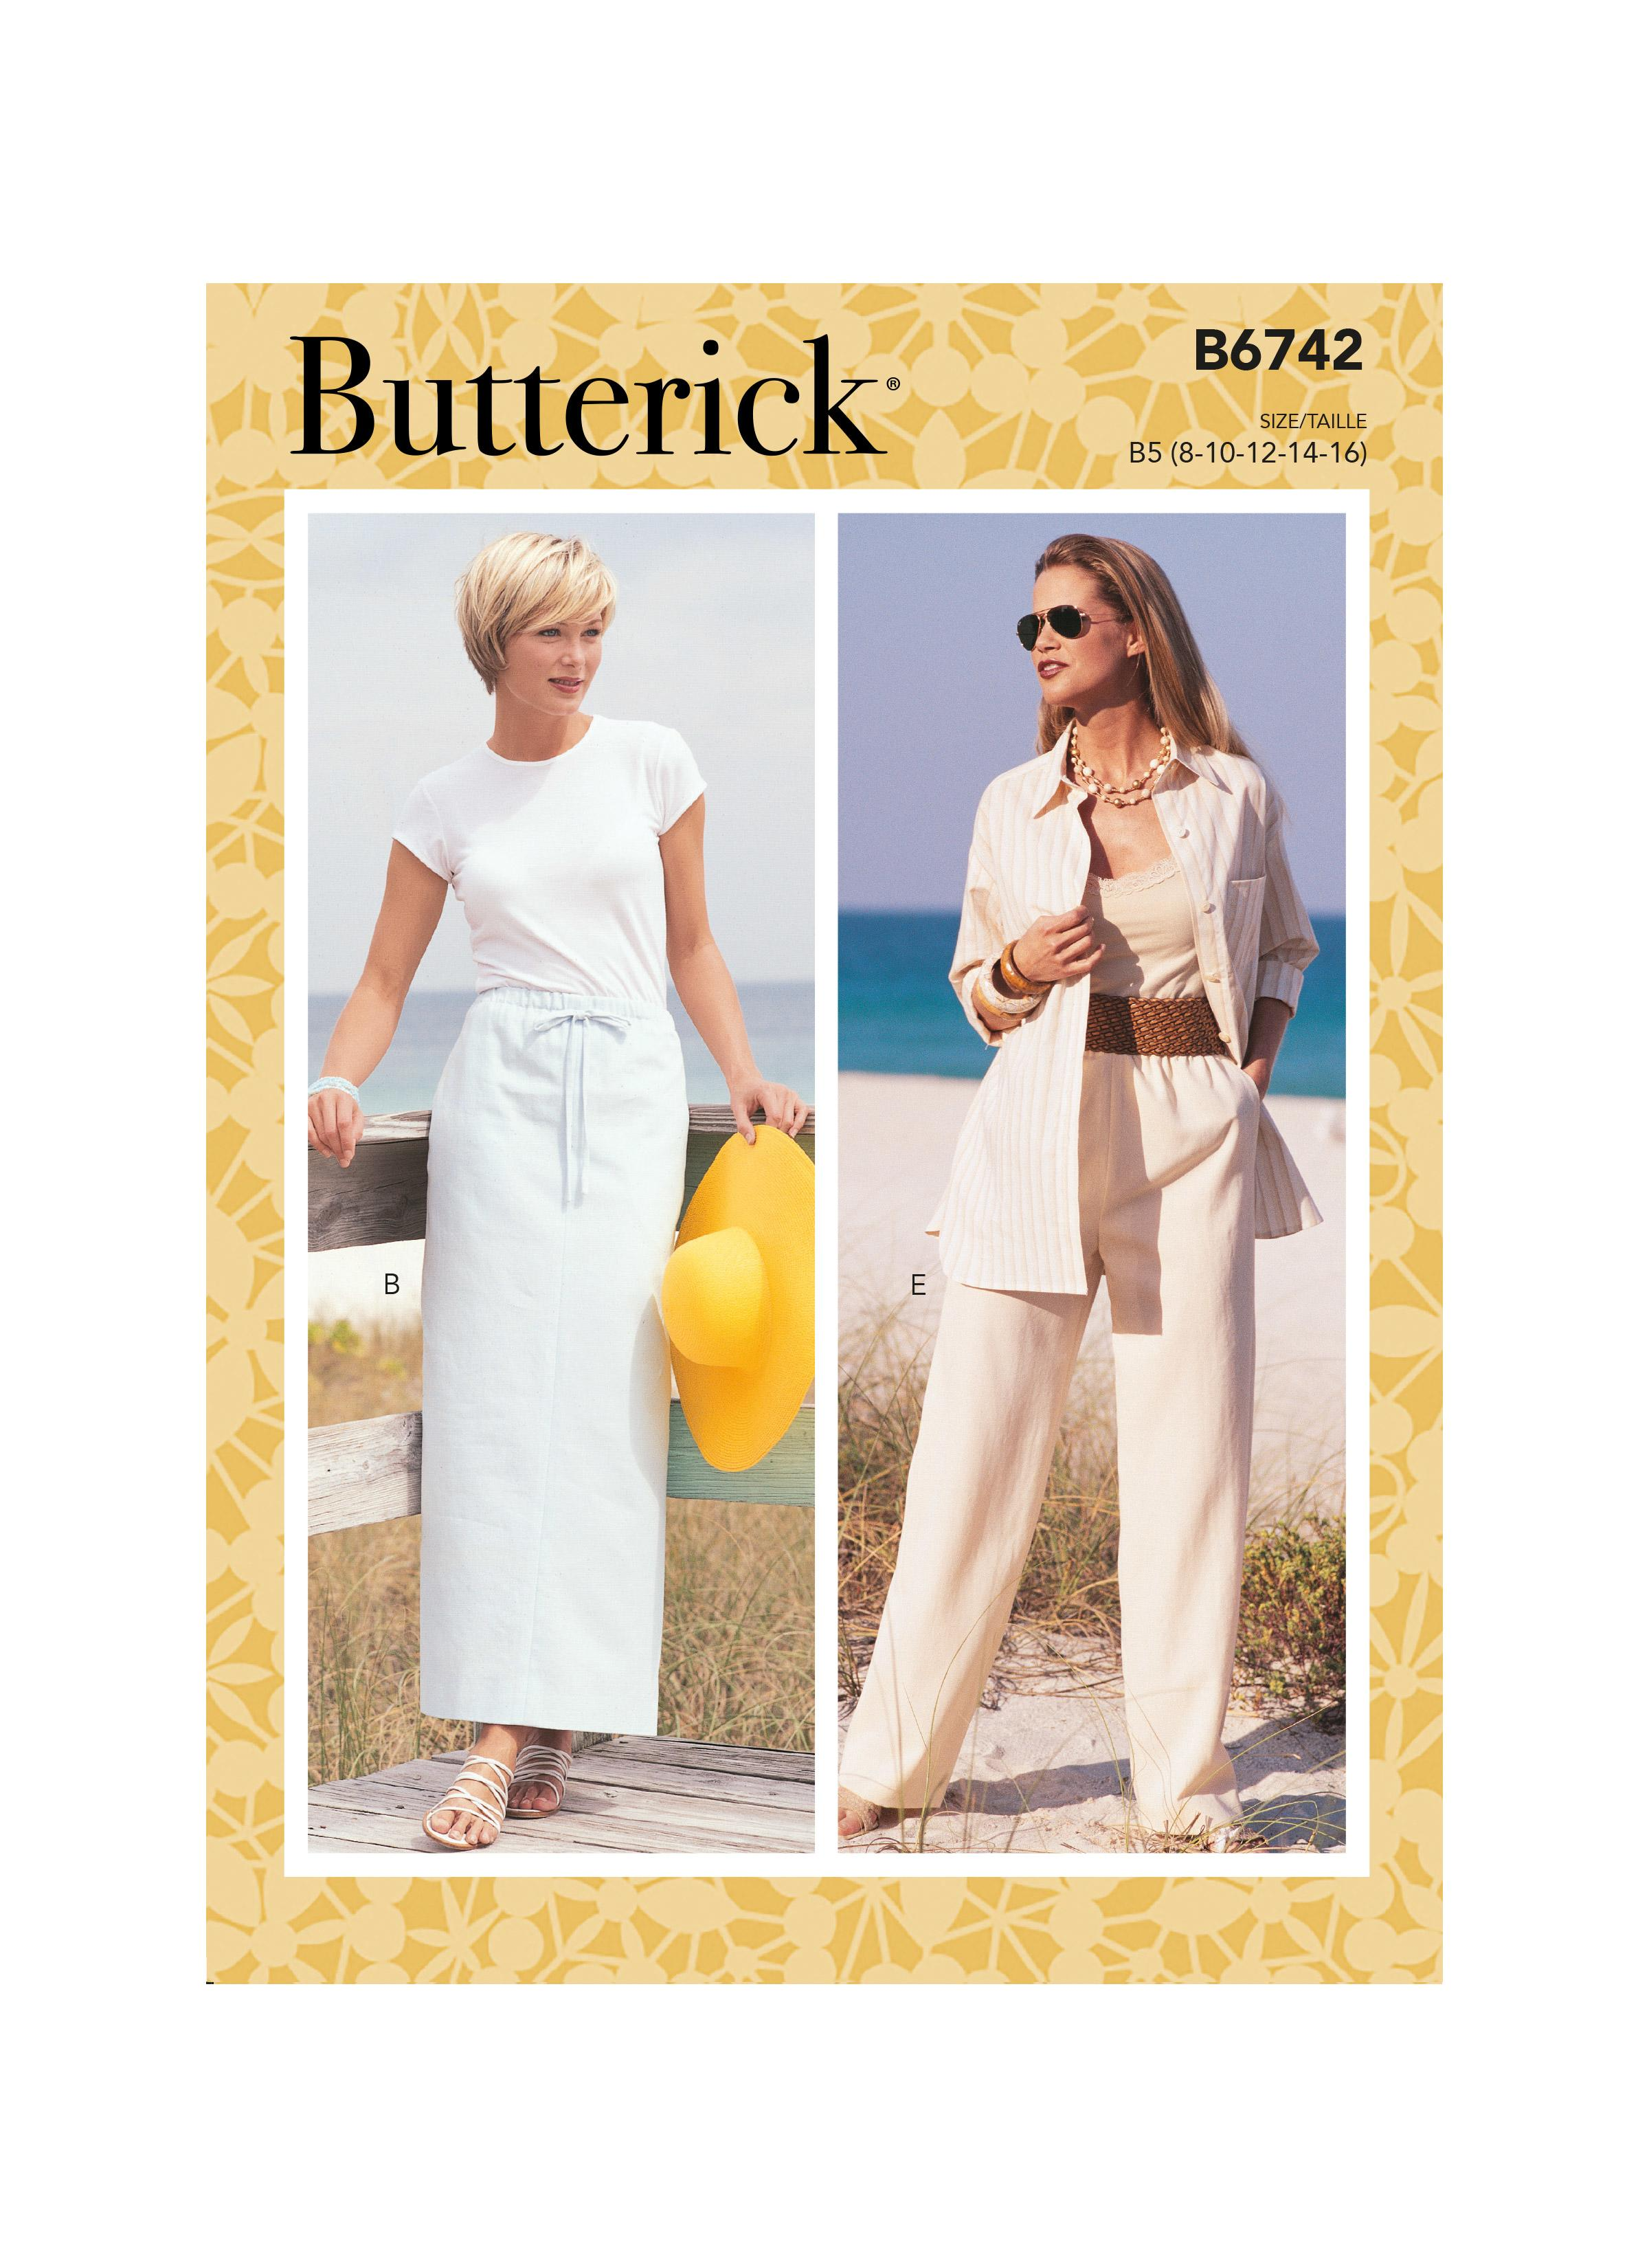 Butterick B6742 Misses'/Misses' Petite Elastic-Waist Skirts, Shorts and Pants